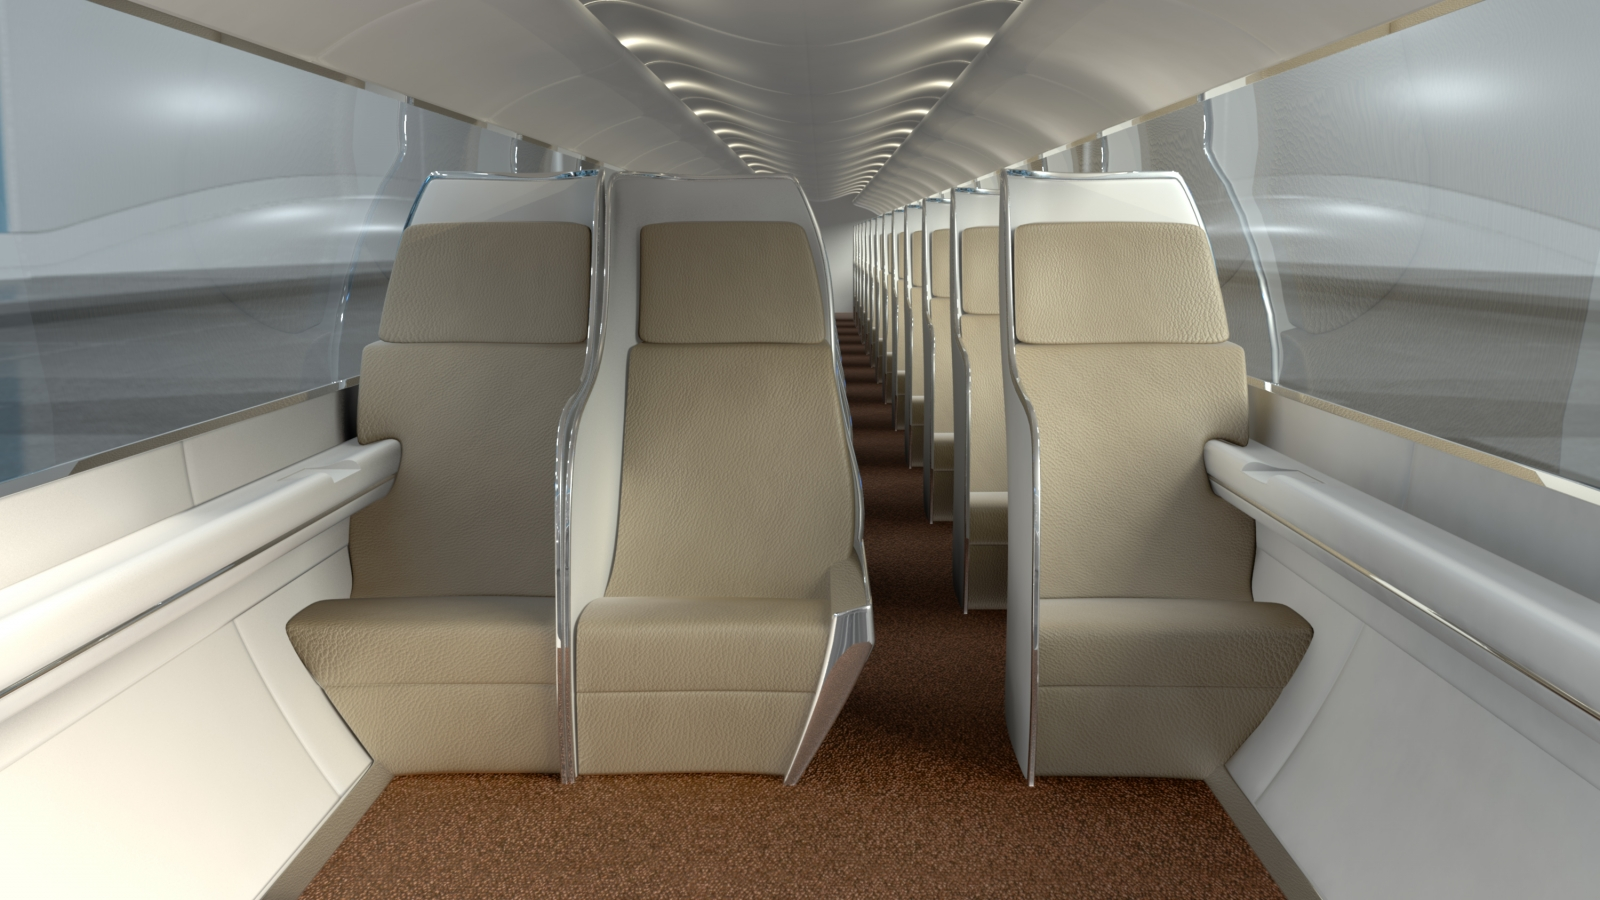 Hyperloop pod interior